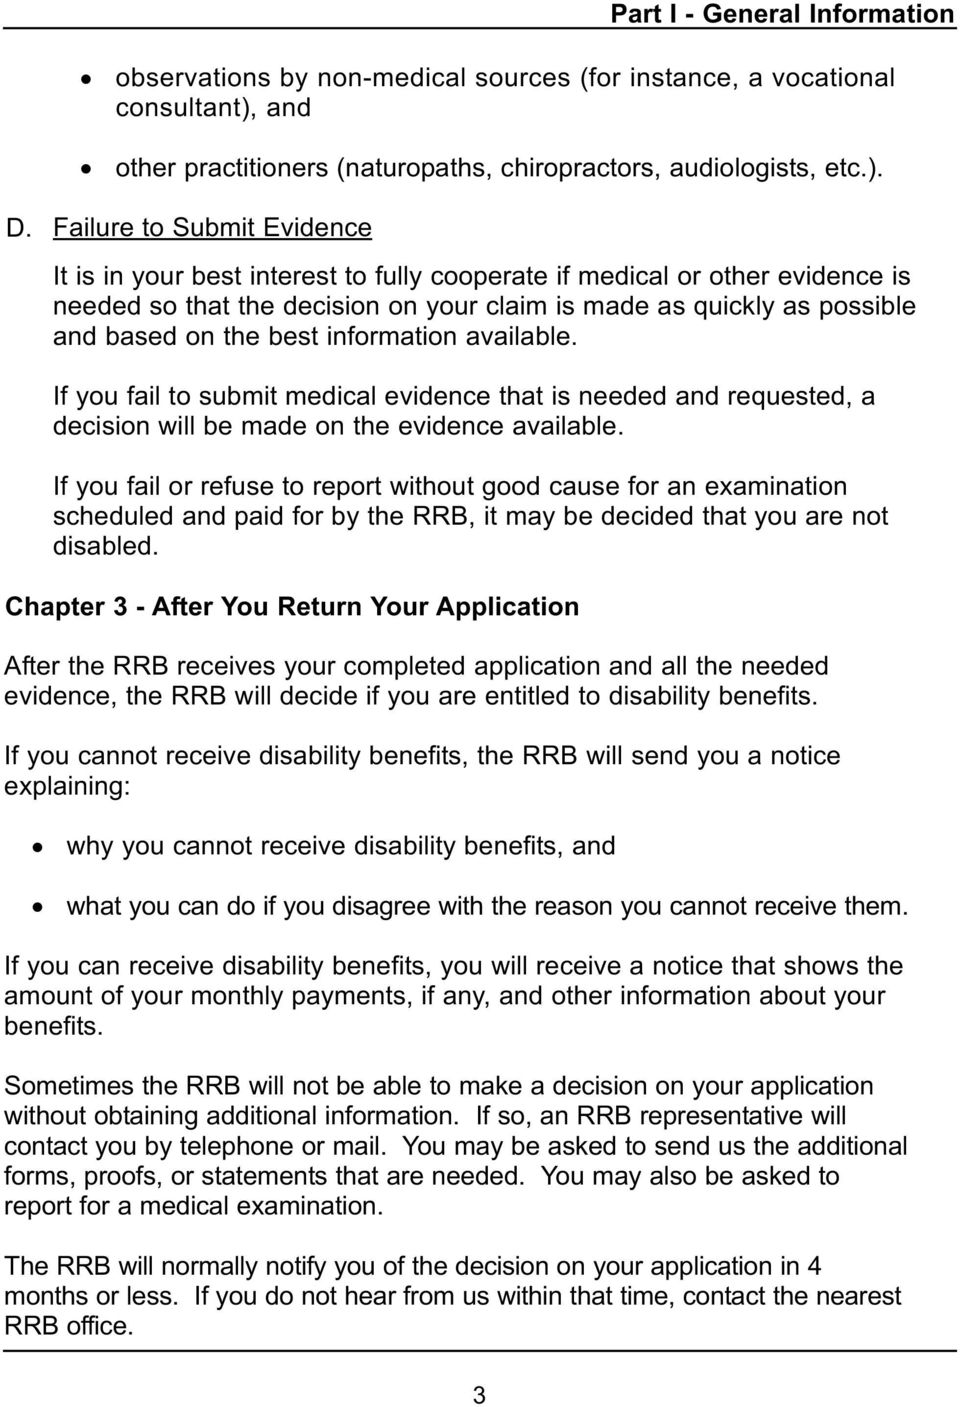 best information available. If you fail to submit medical evidence that is needed and requested, a decision will be made on the evidence available.